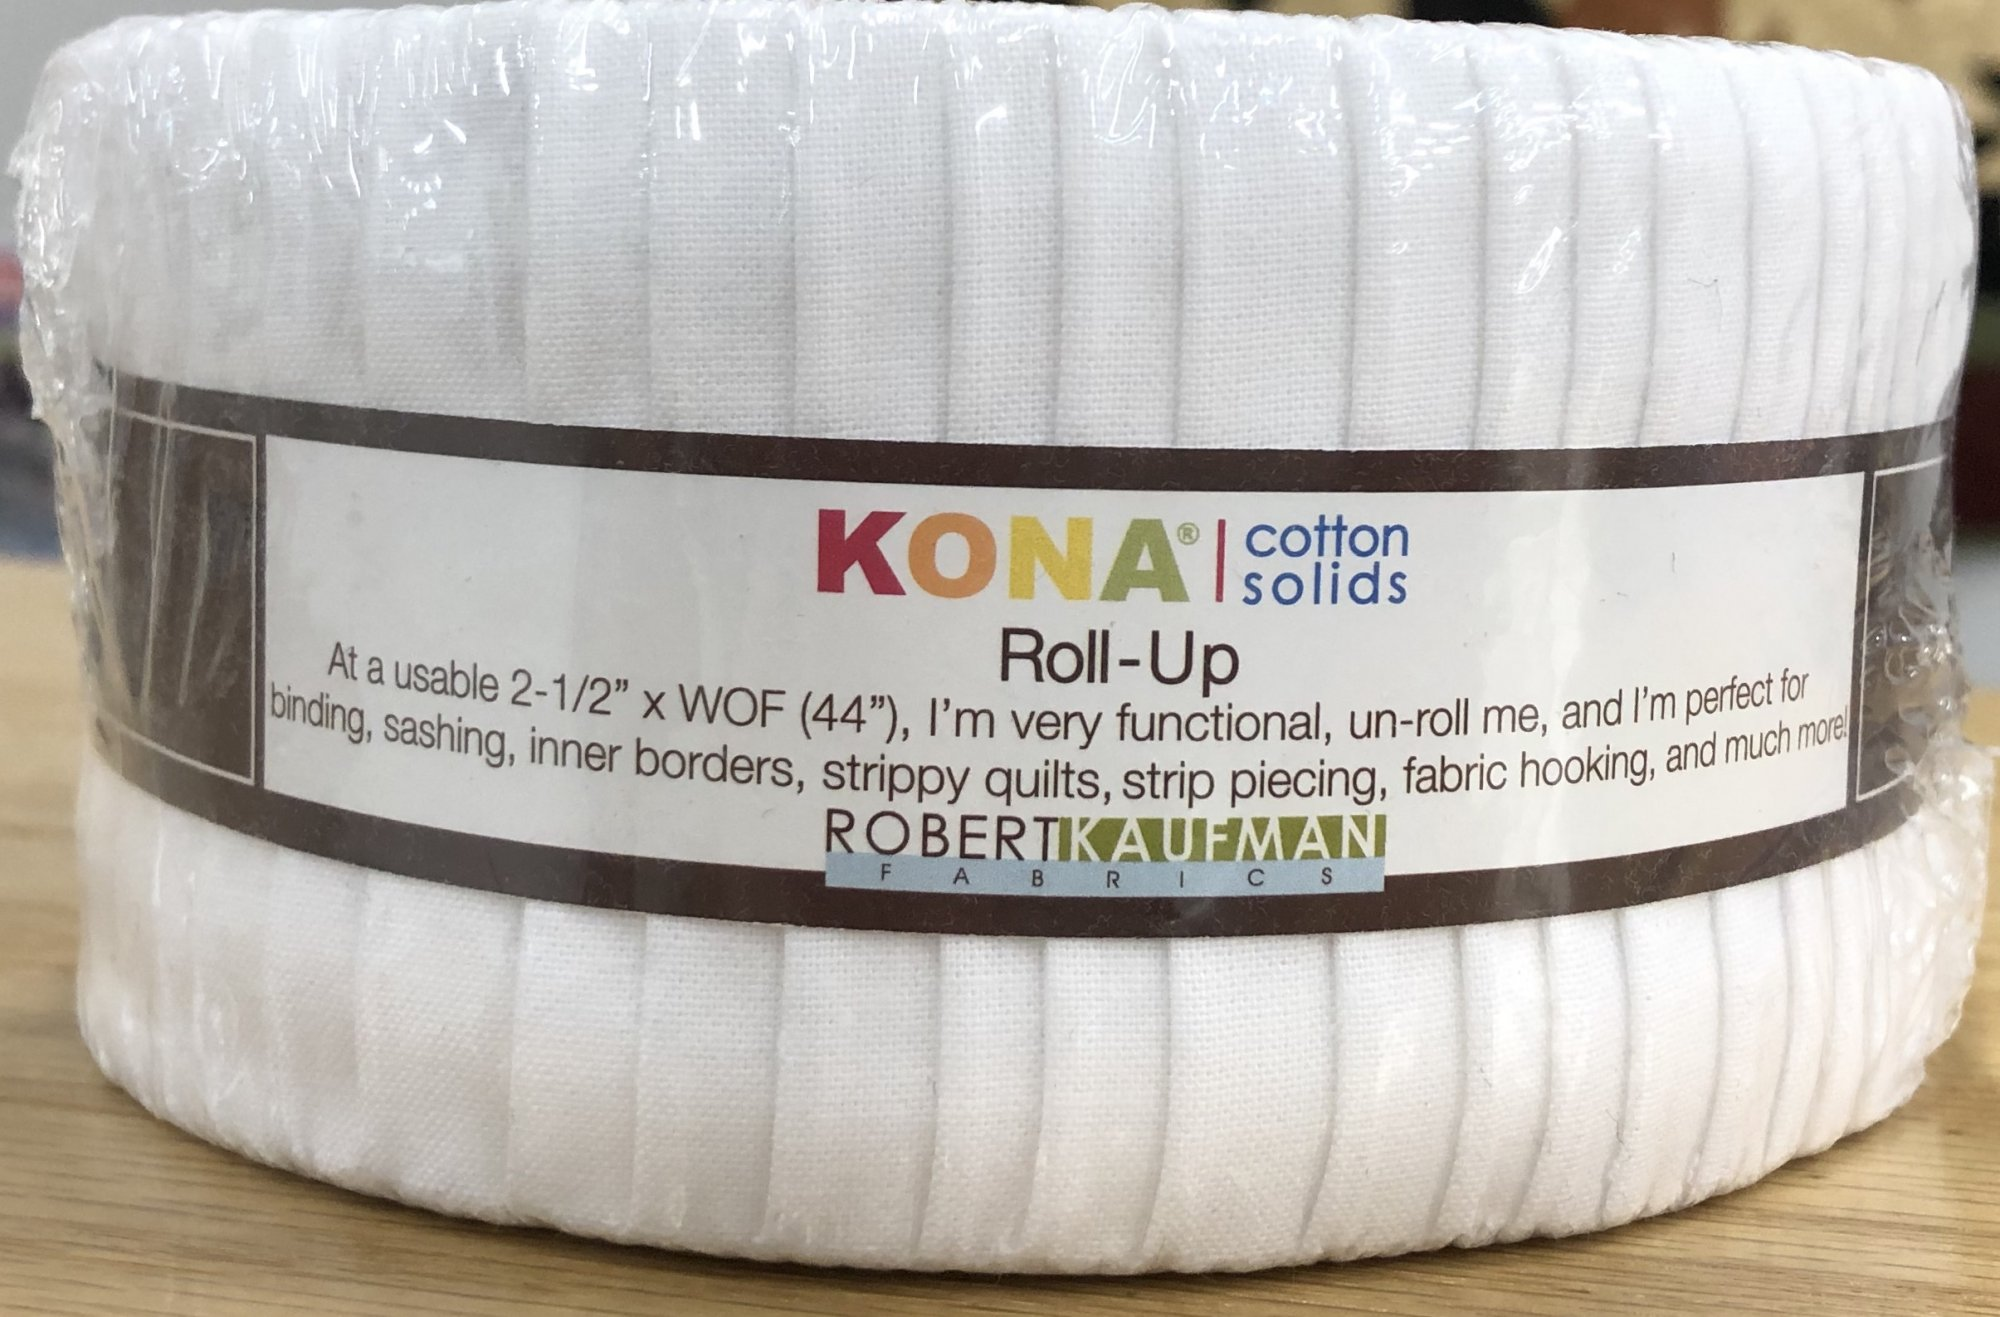 Kona Roll Up Cotton Solids, 2 1/2 Strips, 40 Count